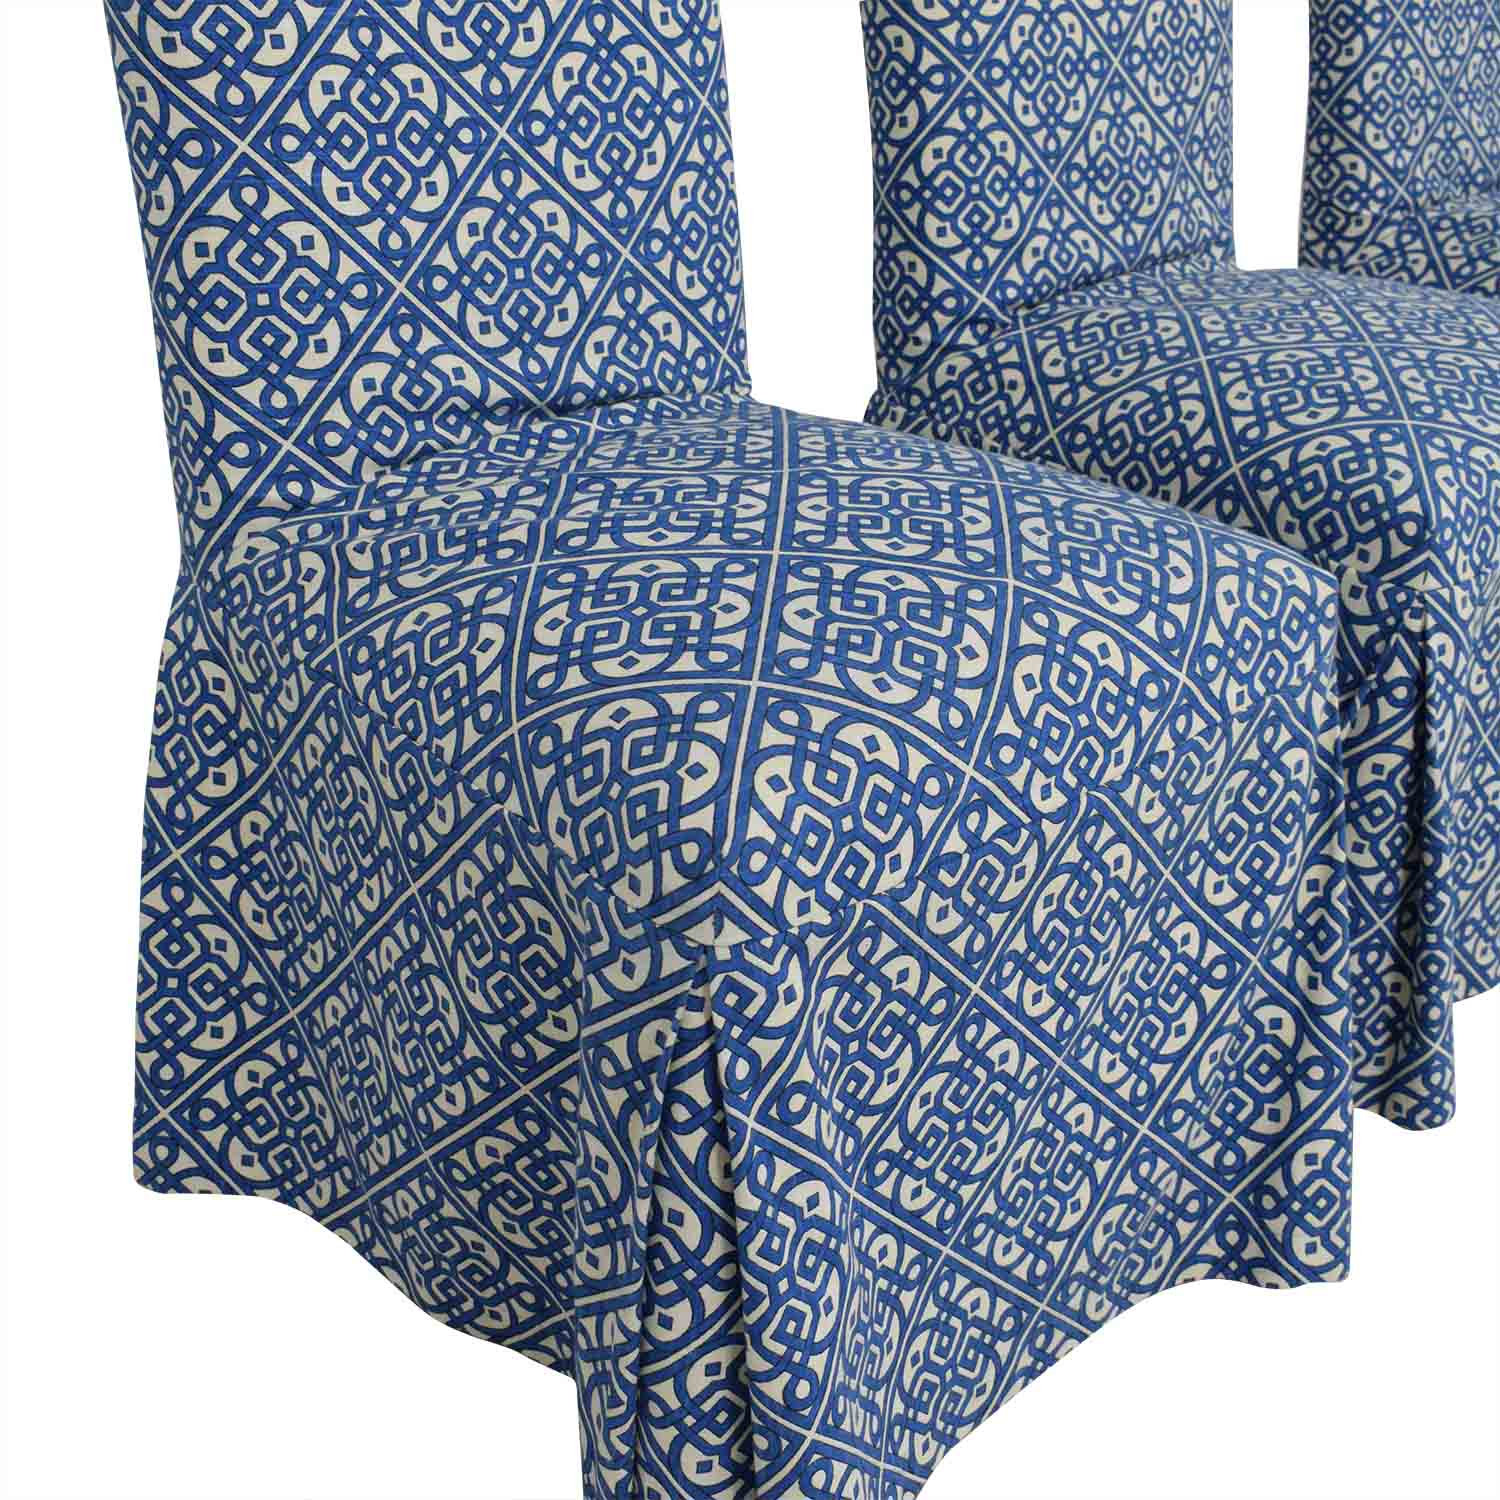 Parsons Custom Slipcovered Dining Chairs / Chairs